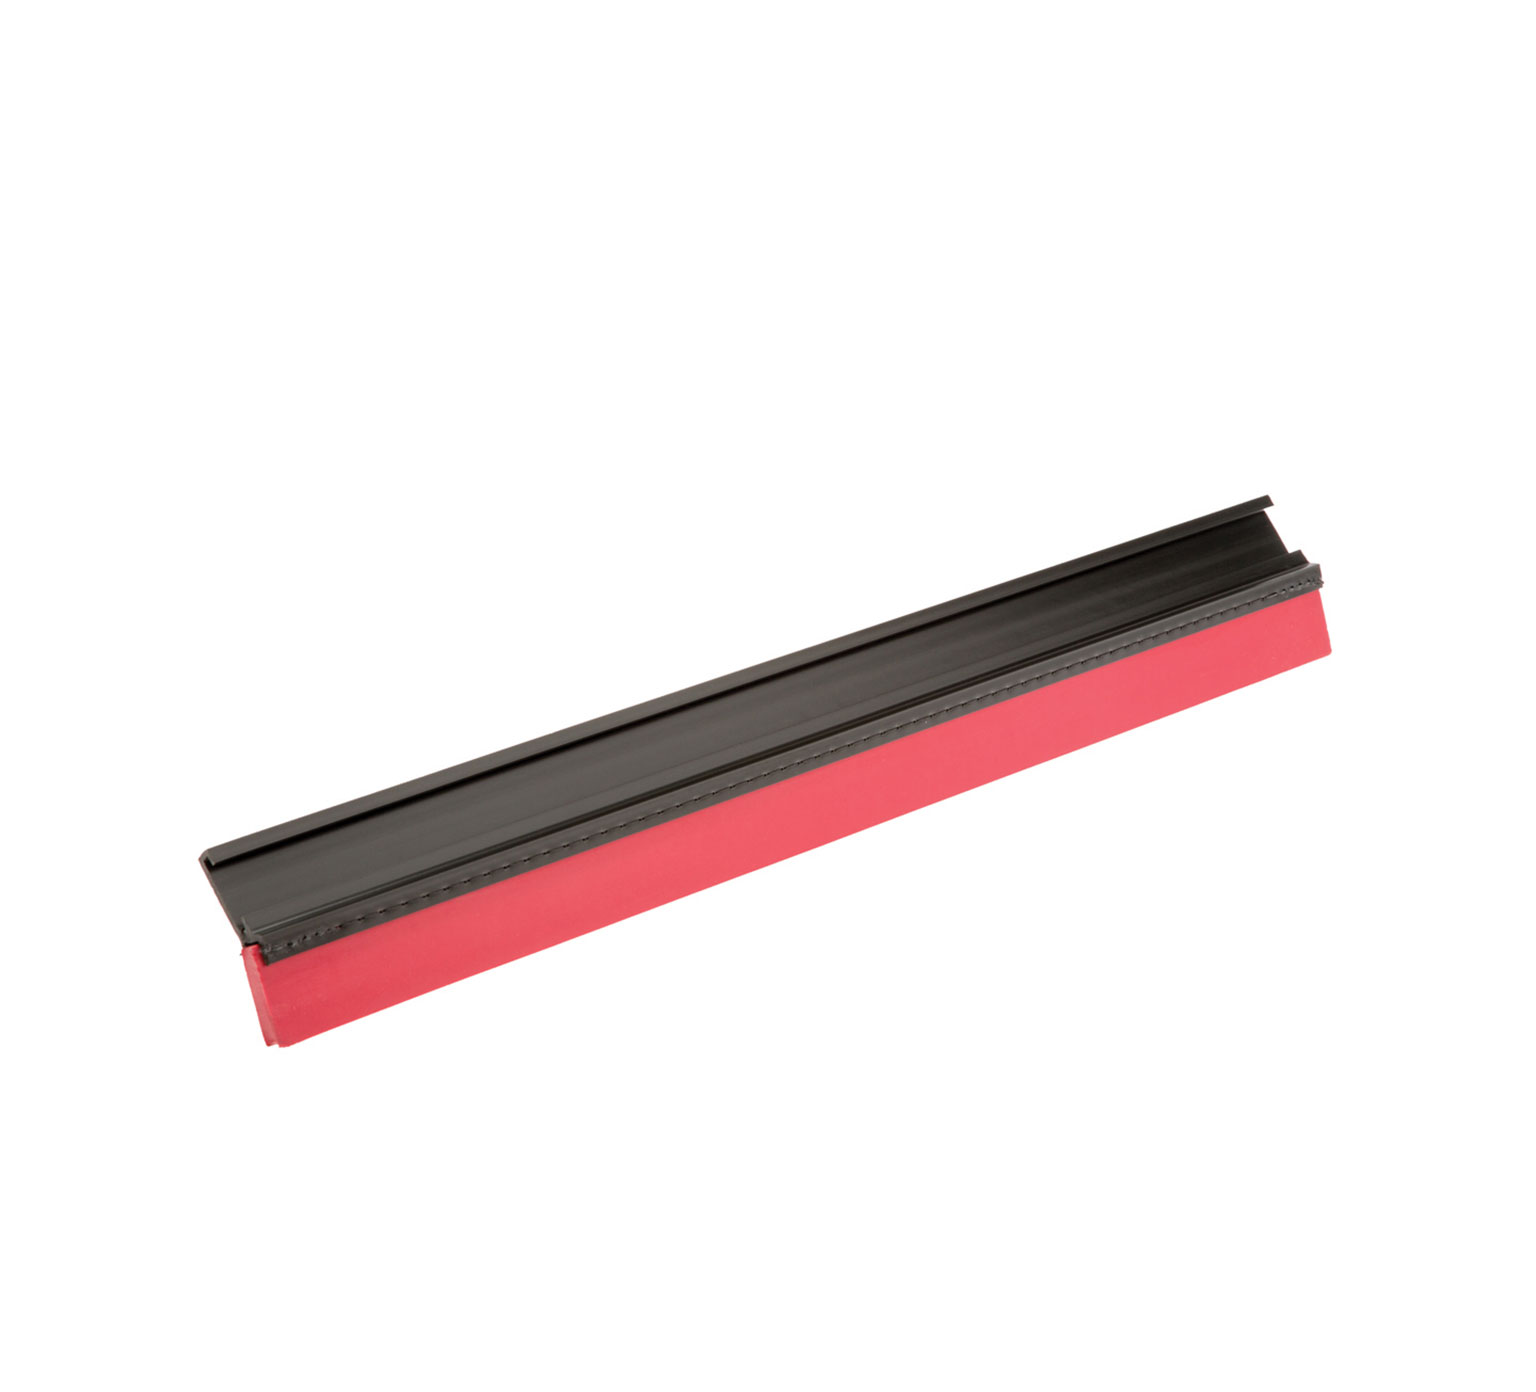 391334 Linatex Side Squeegee Kit – 25.5 in alt 1